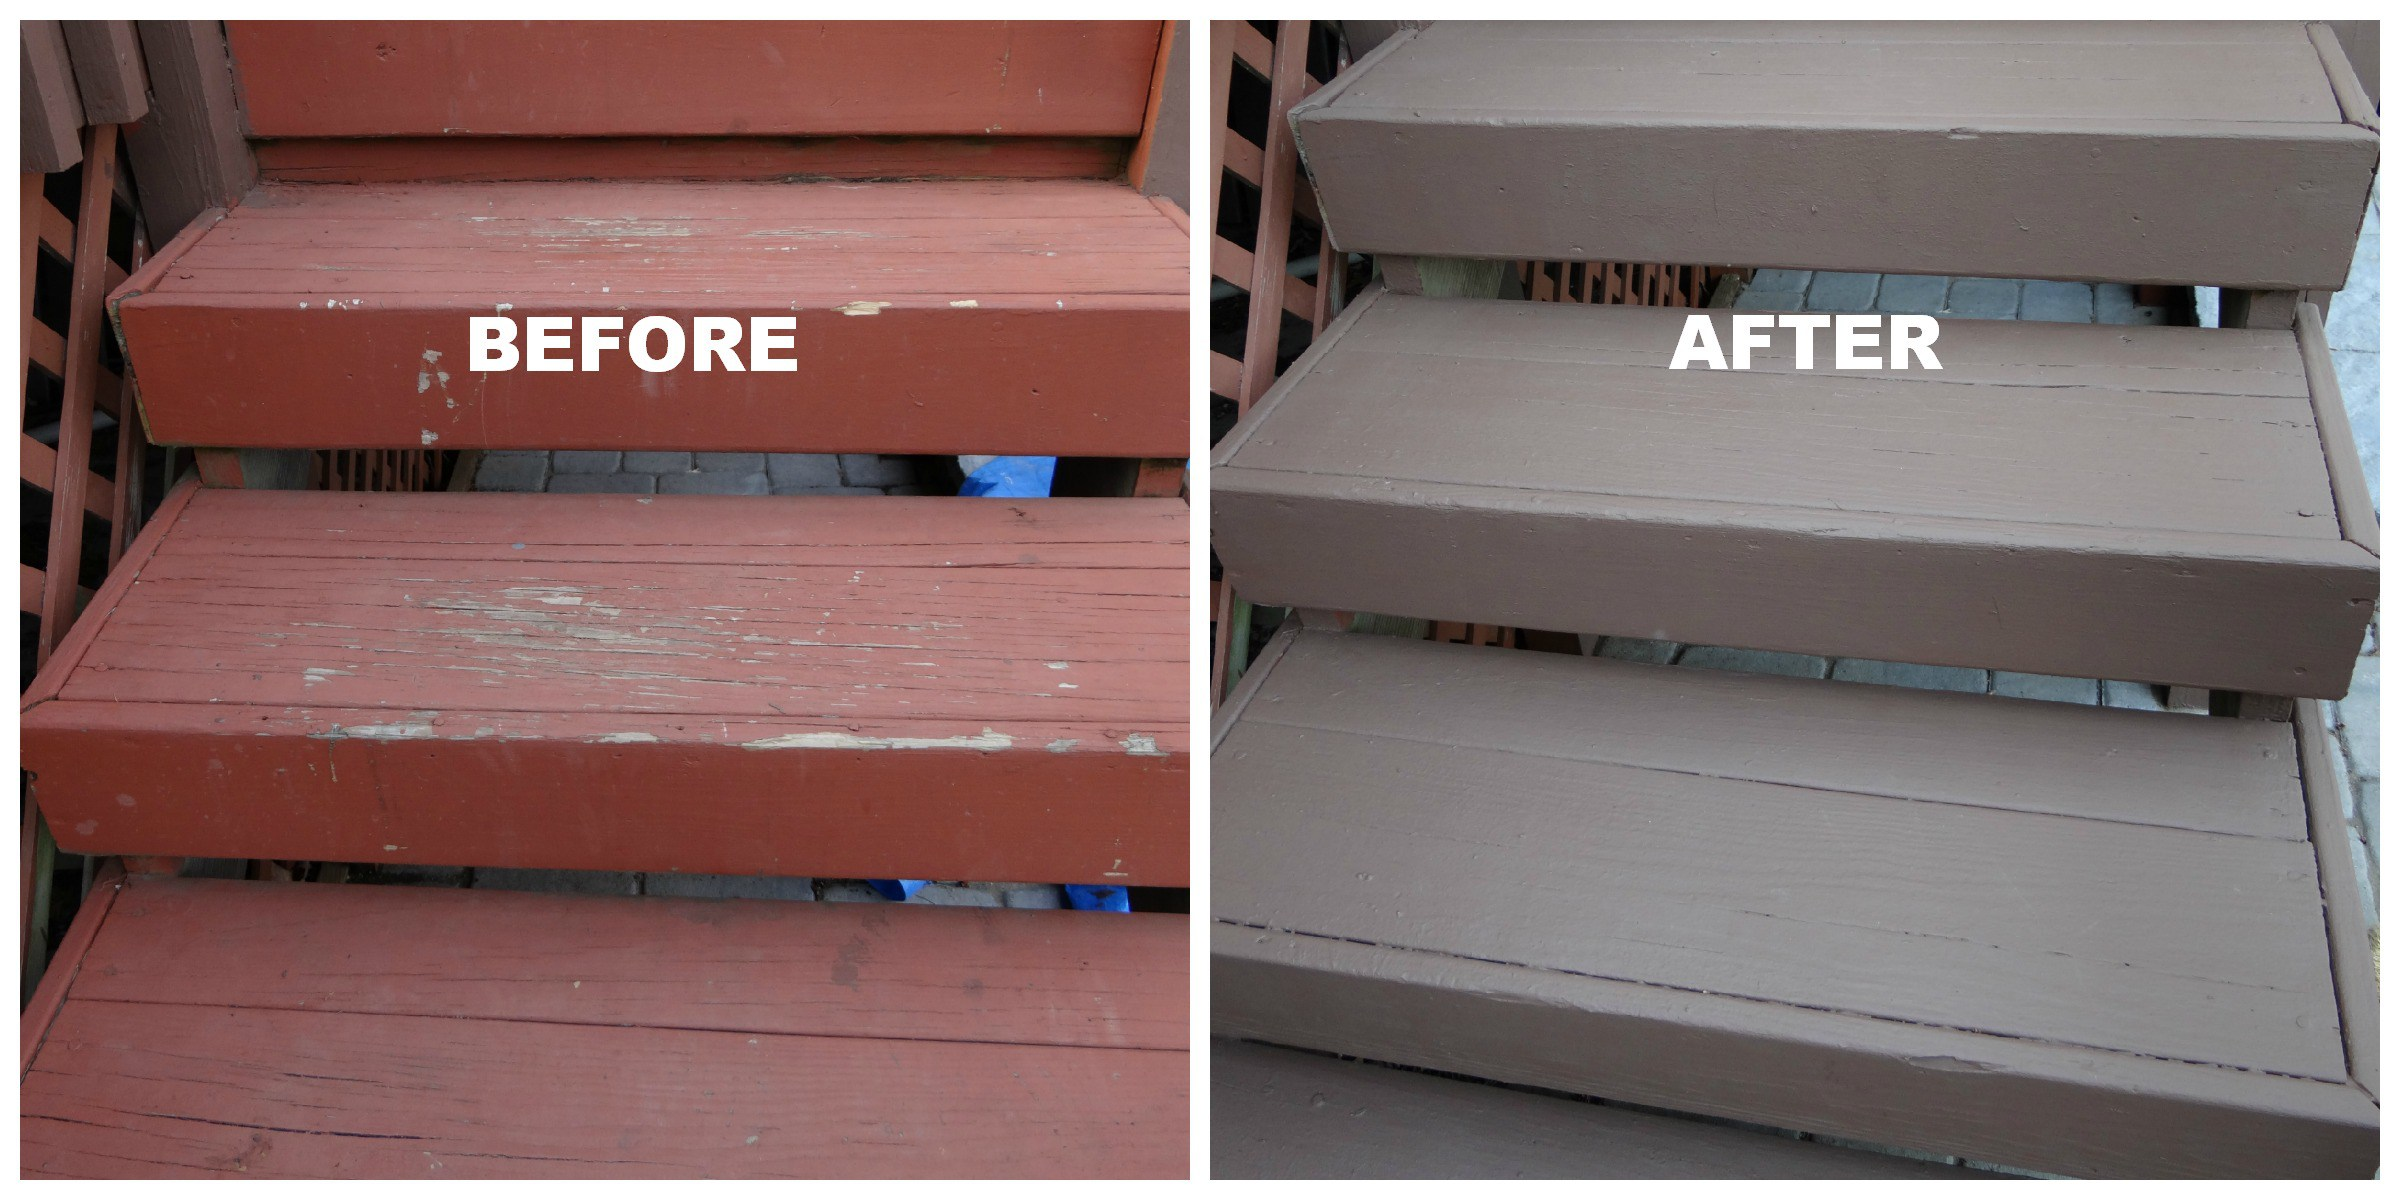 Behr Deck Over | Behr Paint Deckover | How to Apply Behr Deckover